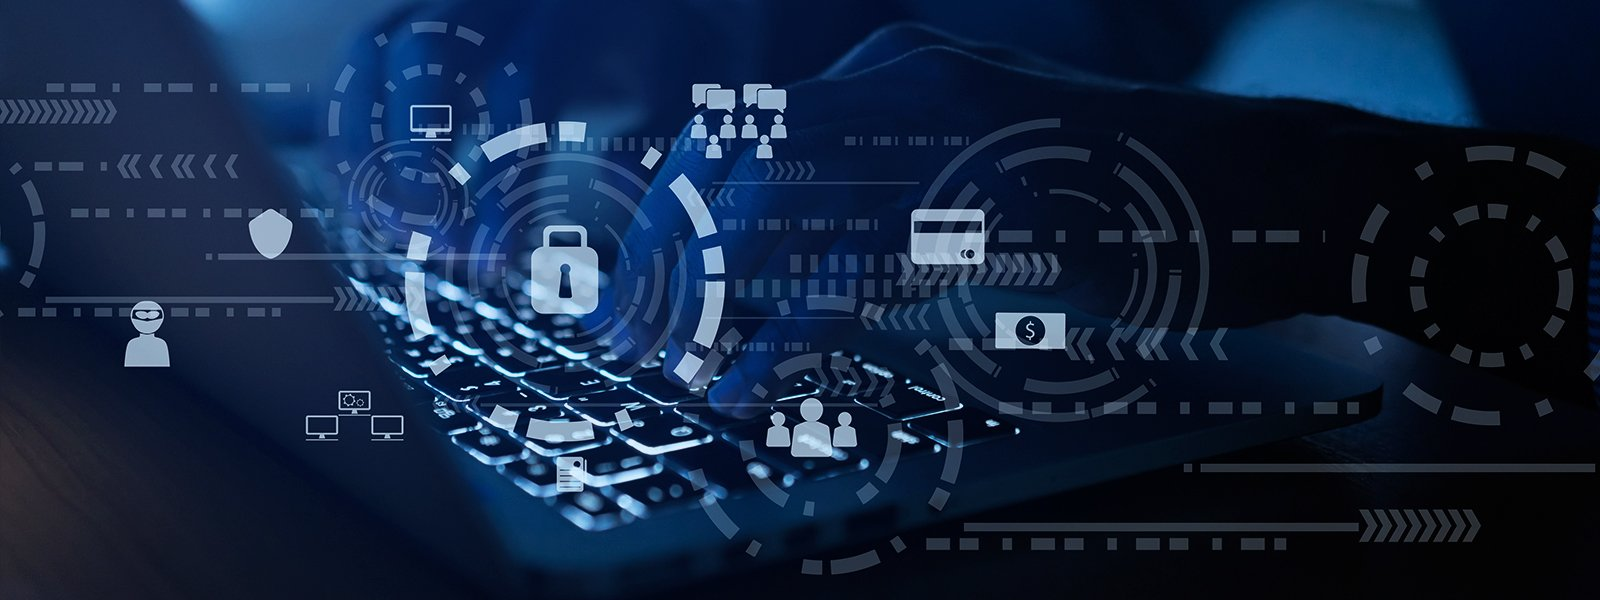 Cyber Incident Analysis